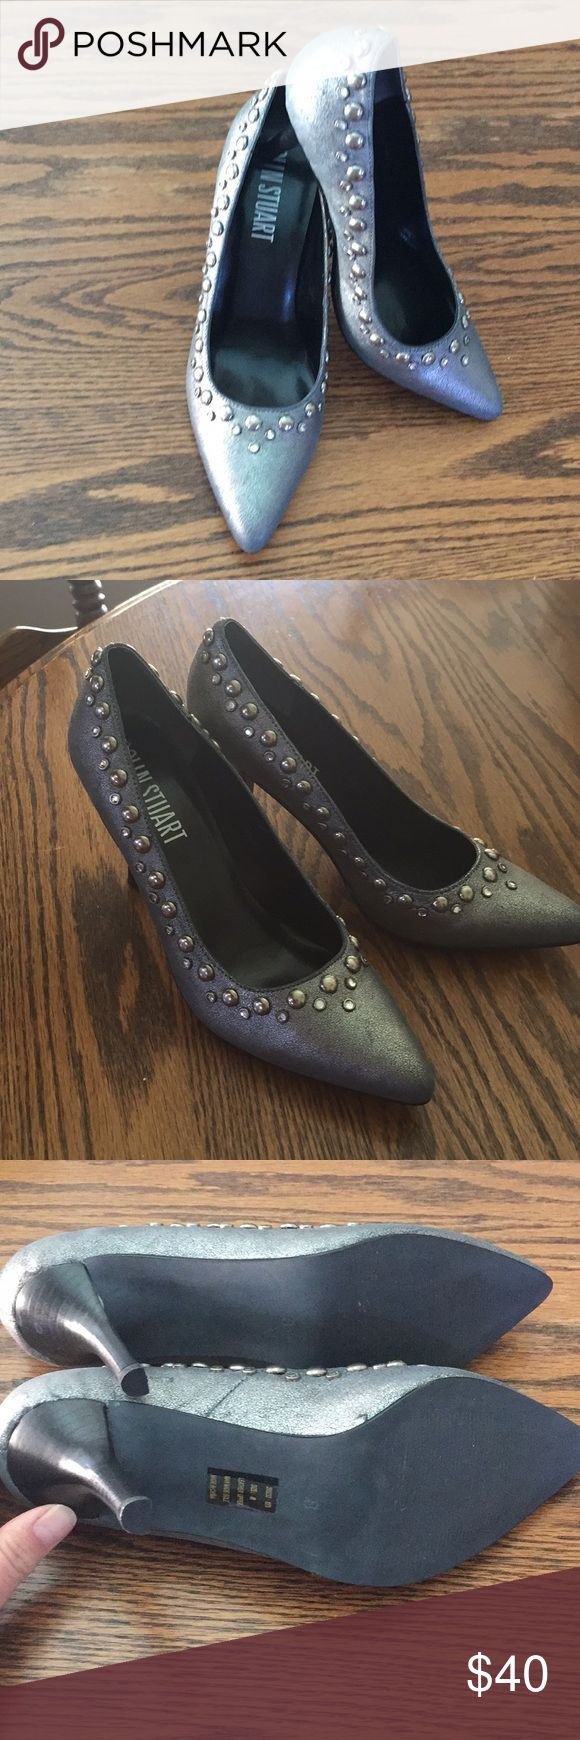 Colin Stuart pumps Stud and jewel trim size 8 NWB NWB never worn, briefly tried-on. These beautiful pumps have been sitting in a box for far too long. Bought from Victoria secret catalog many years ago. See photos of condition  Make me an offer  have a beautiful day !! Colin Stuart Shoes Heels